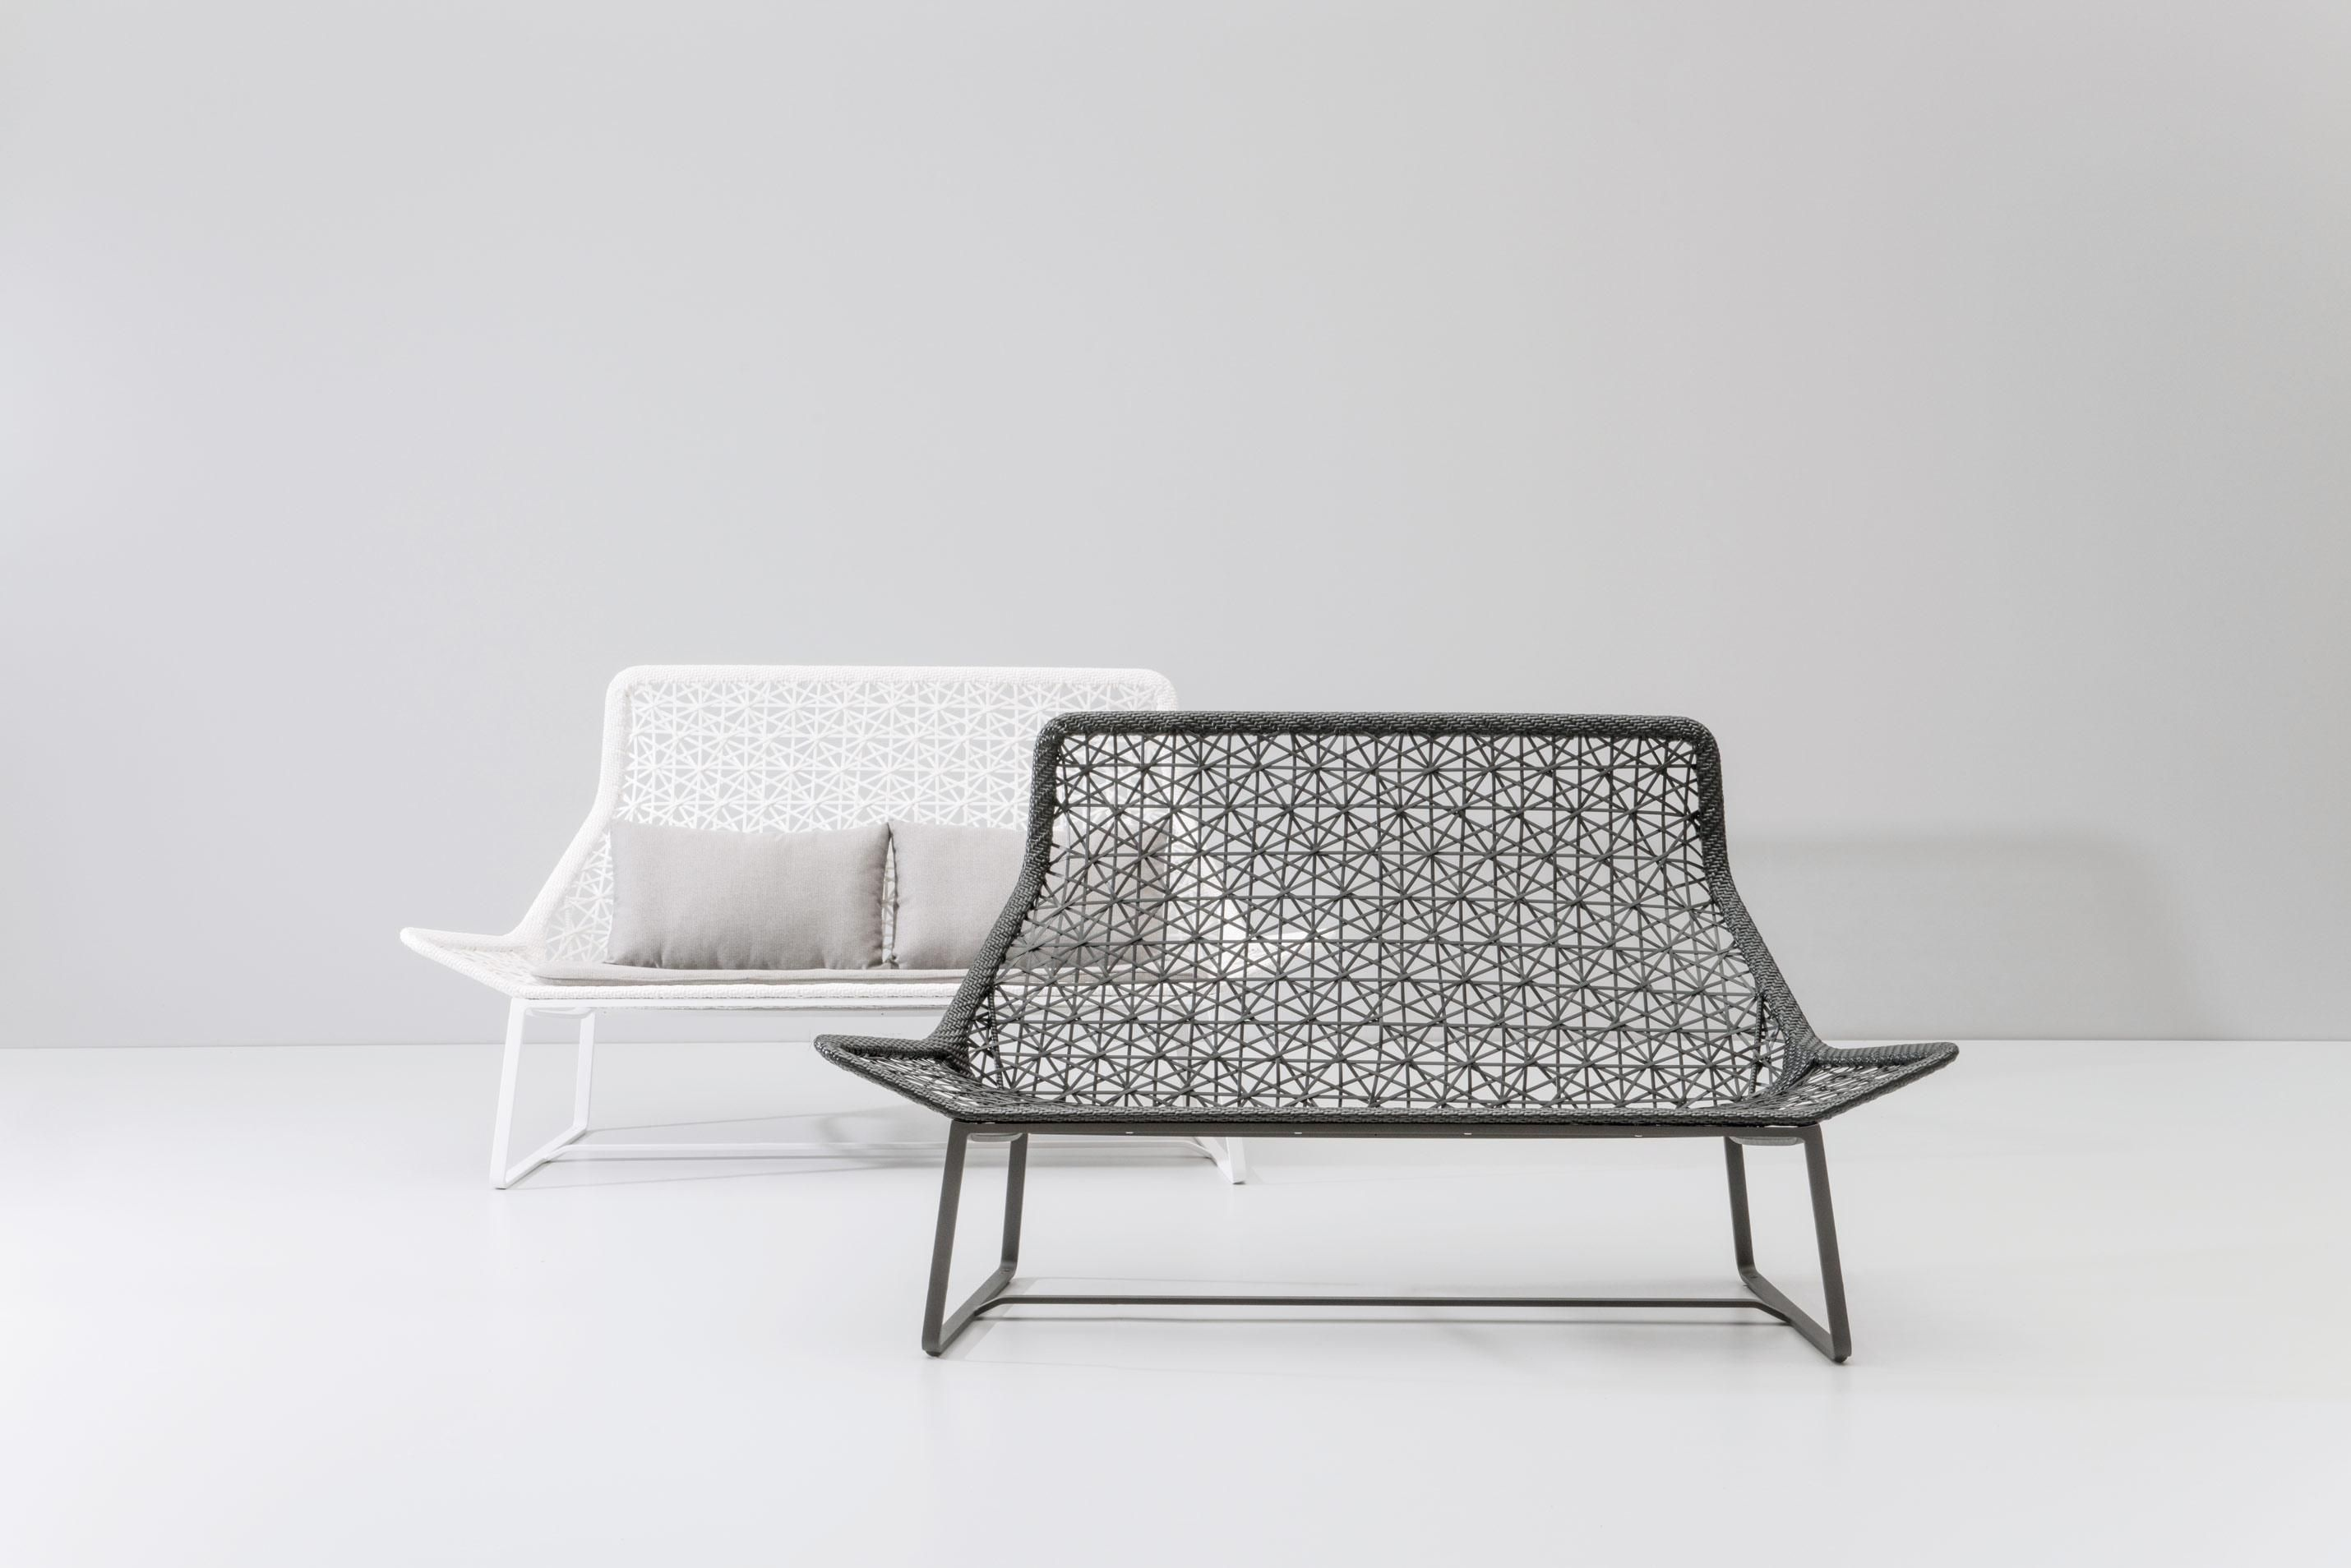 Kettal maia seater sofá chairs pinterest swing chairs